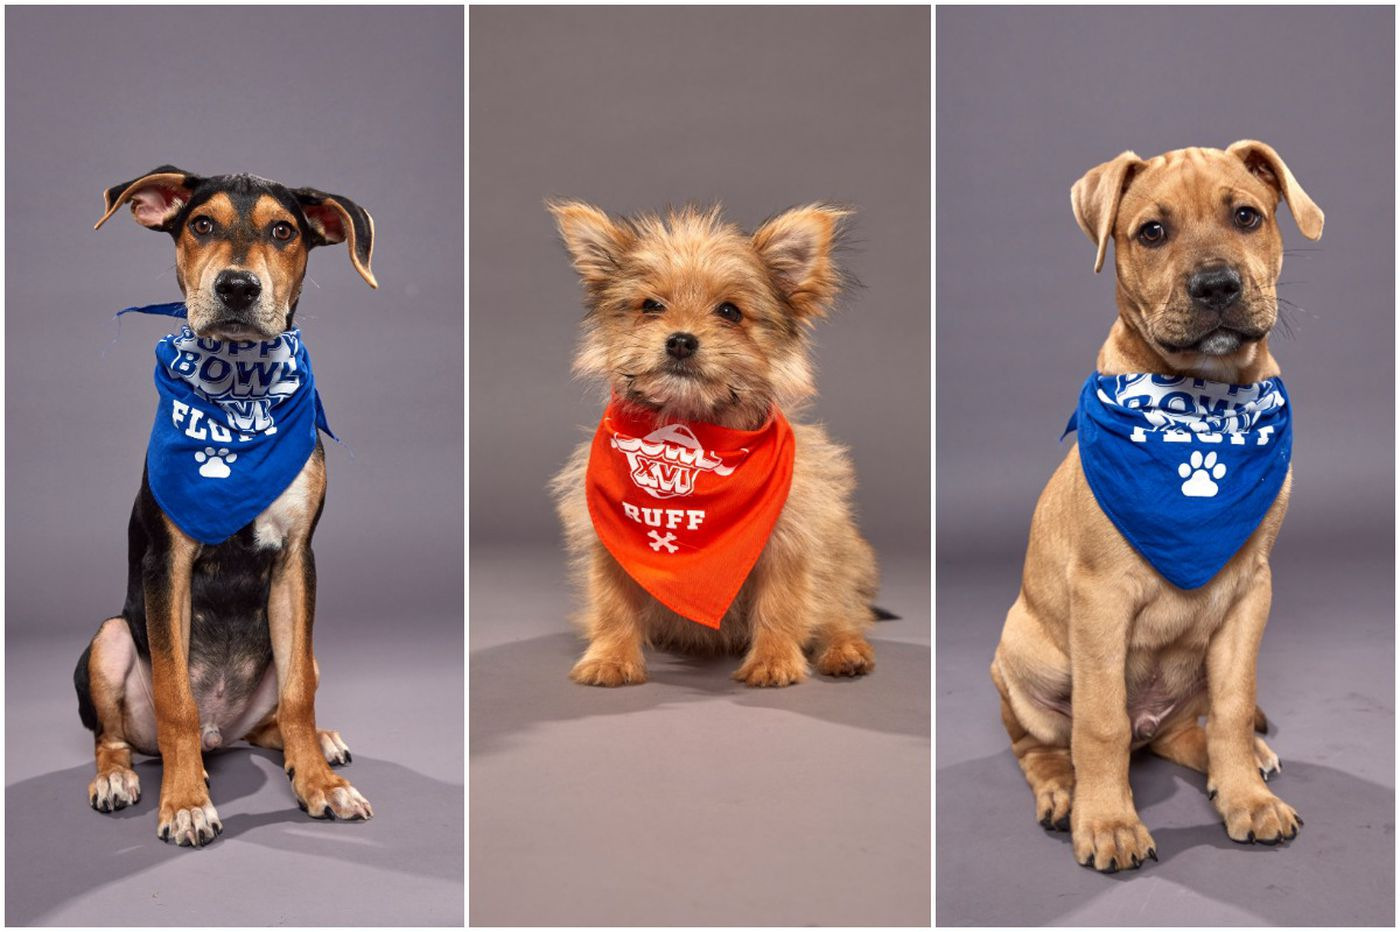 Meet the Philly-area dogs competing in Animal Planet's Puppy Bowl